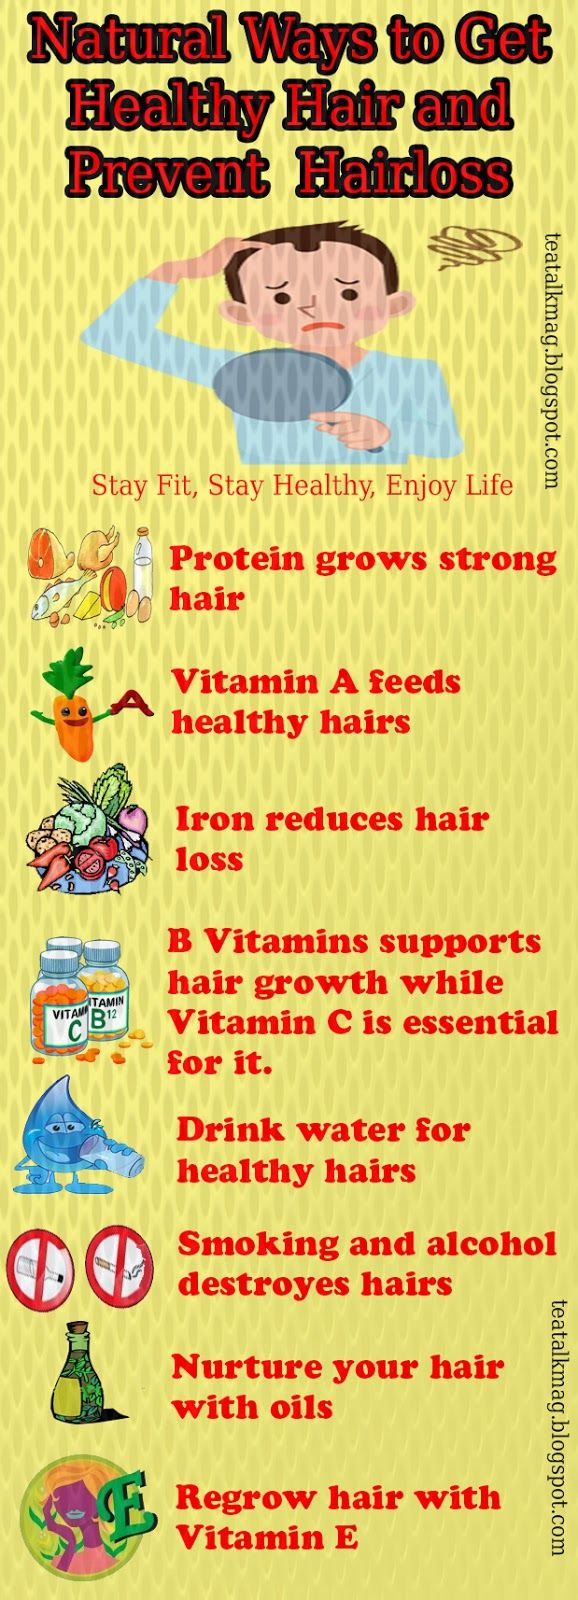 Natural Ways To Prevent Hair Loss During Chemotherapy